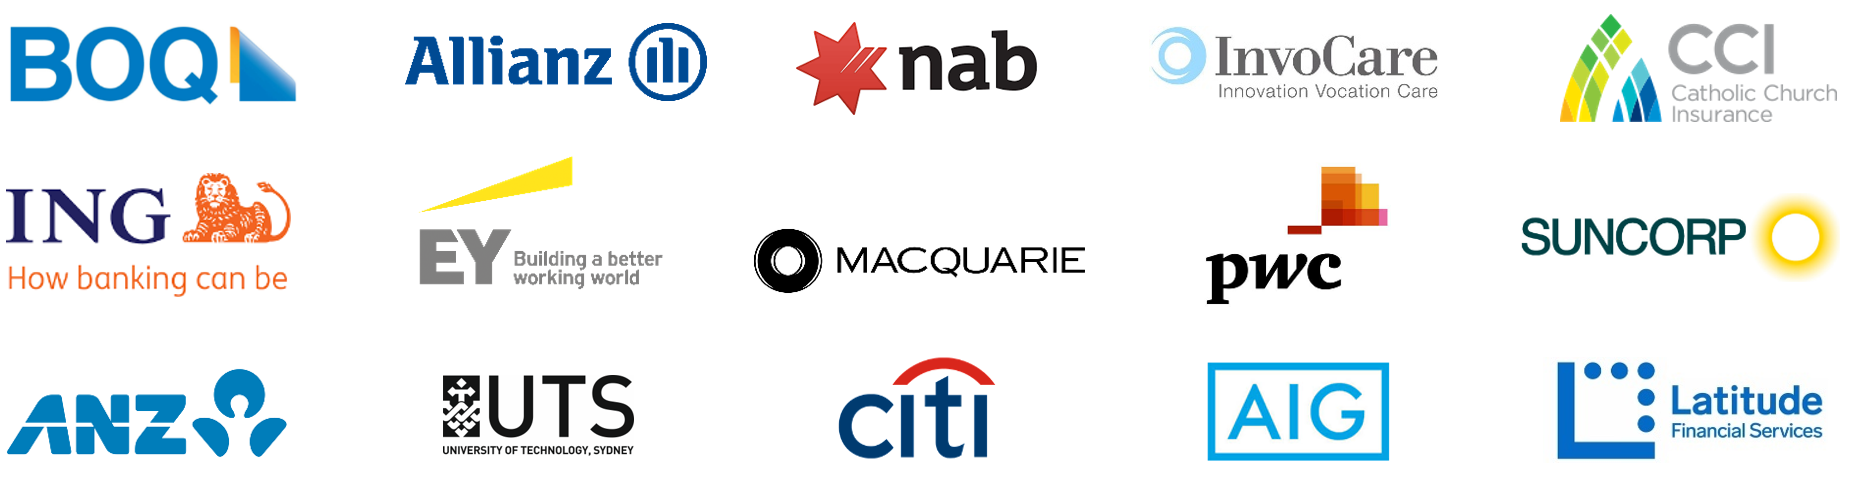 Providing payment solutions for some of Australia's largest organisations